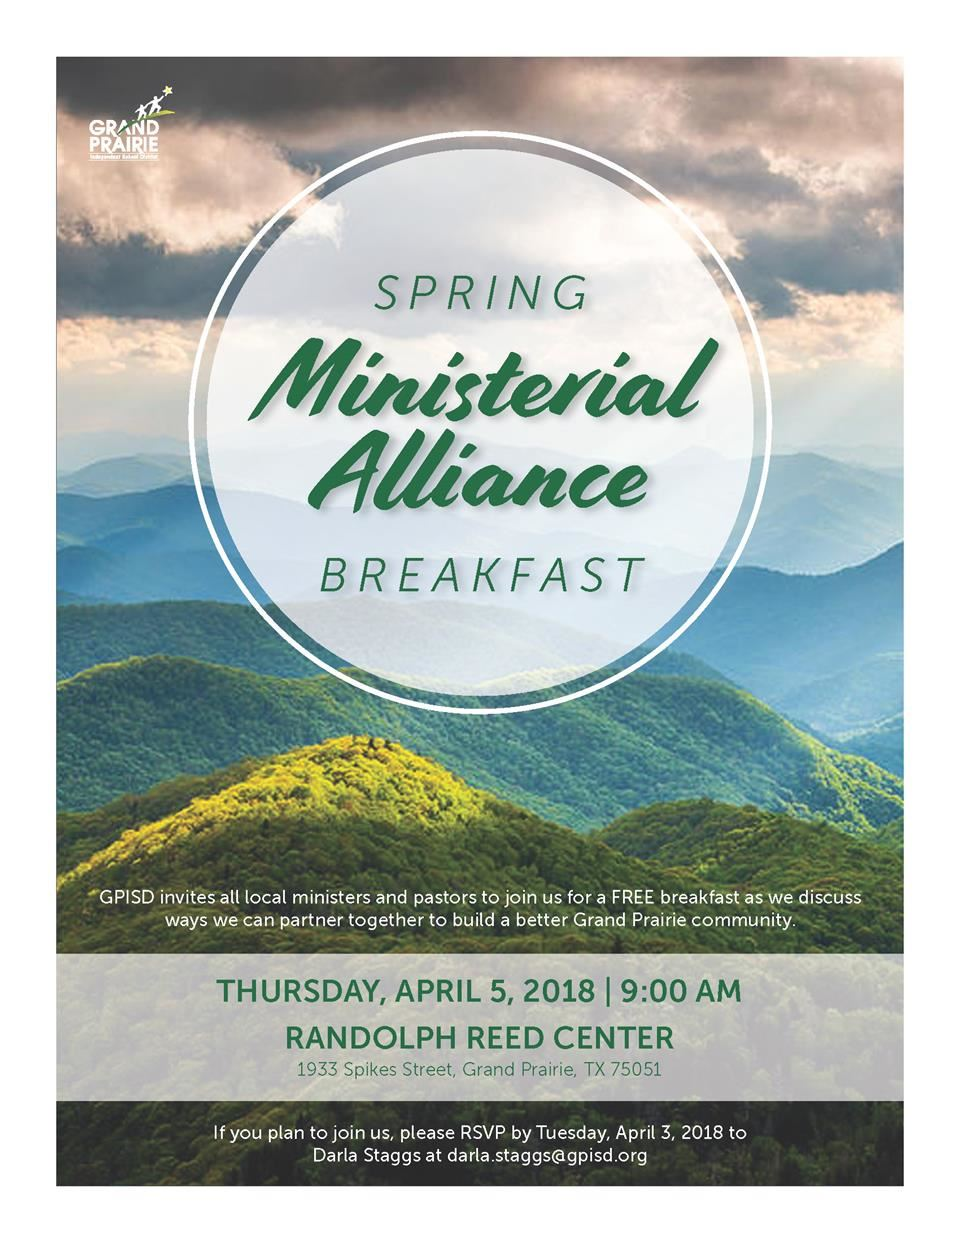 Spring Ministerial Alliance Breakfast